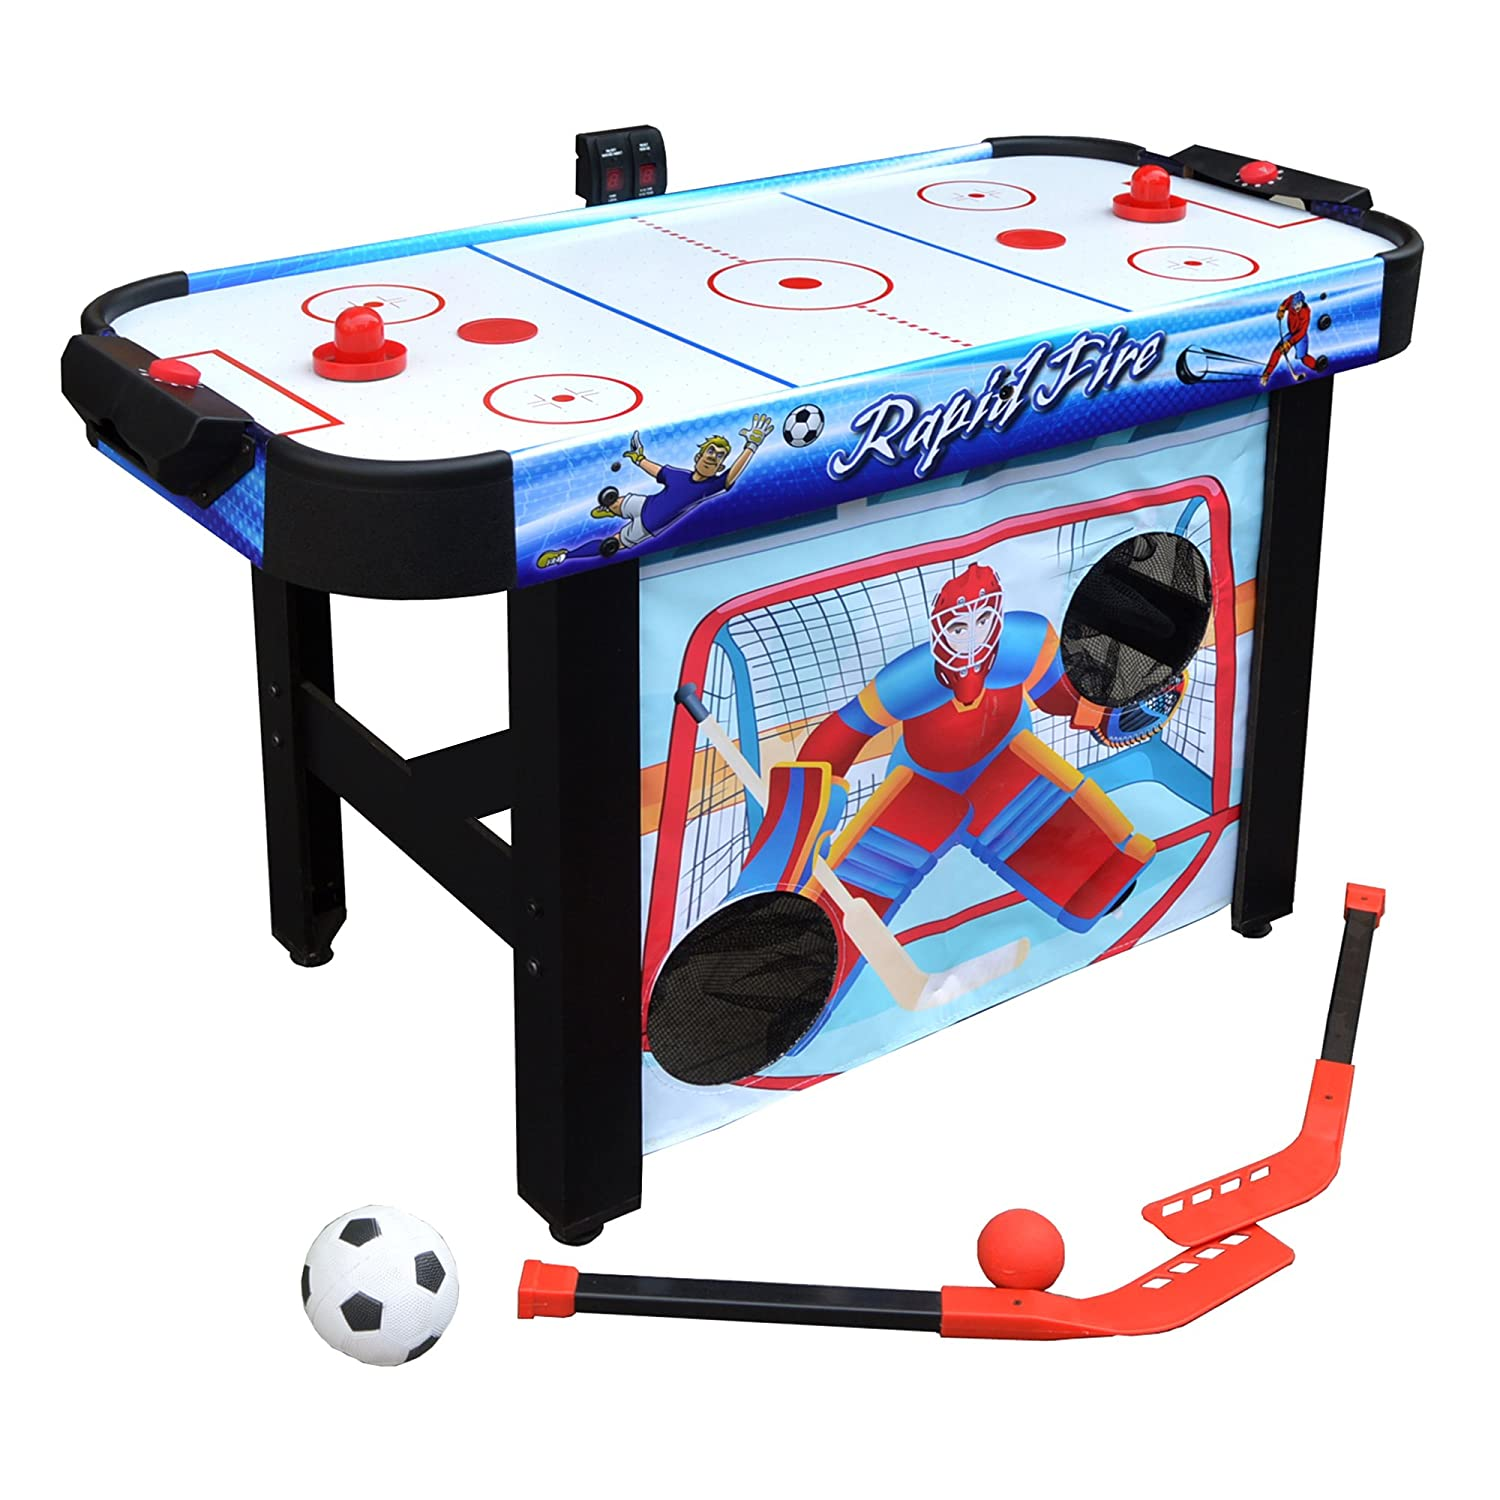 Hathaway Rapid Fire 42-in 3-in-1 Air Hockey Multi-Game Table BG1157M